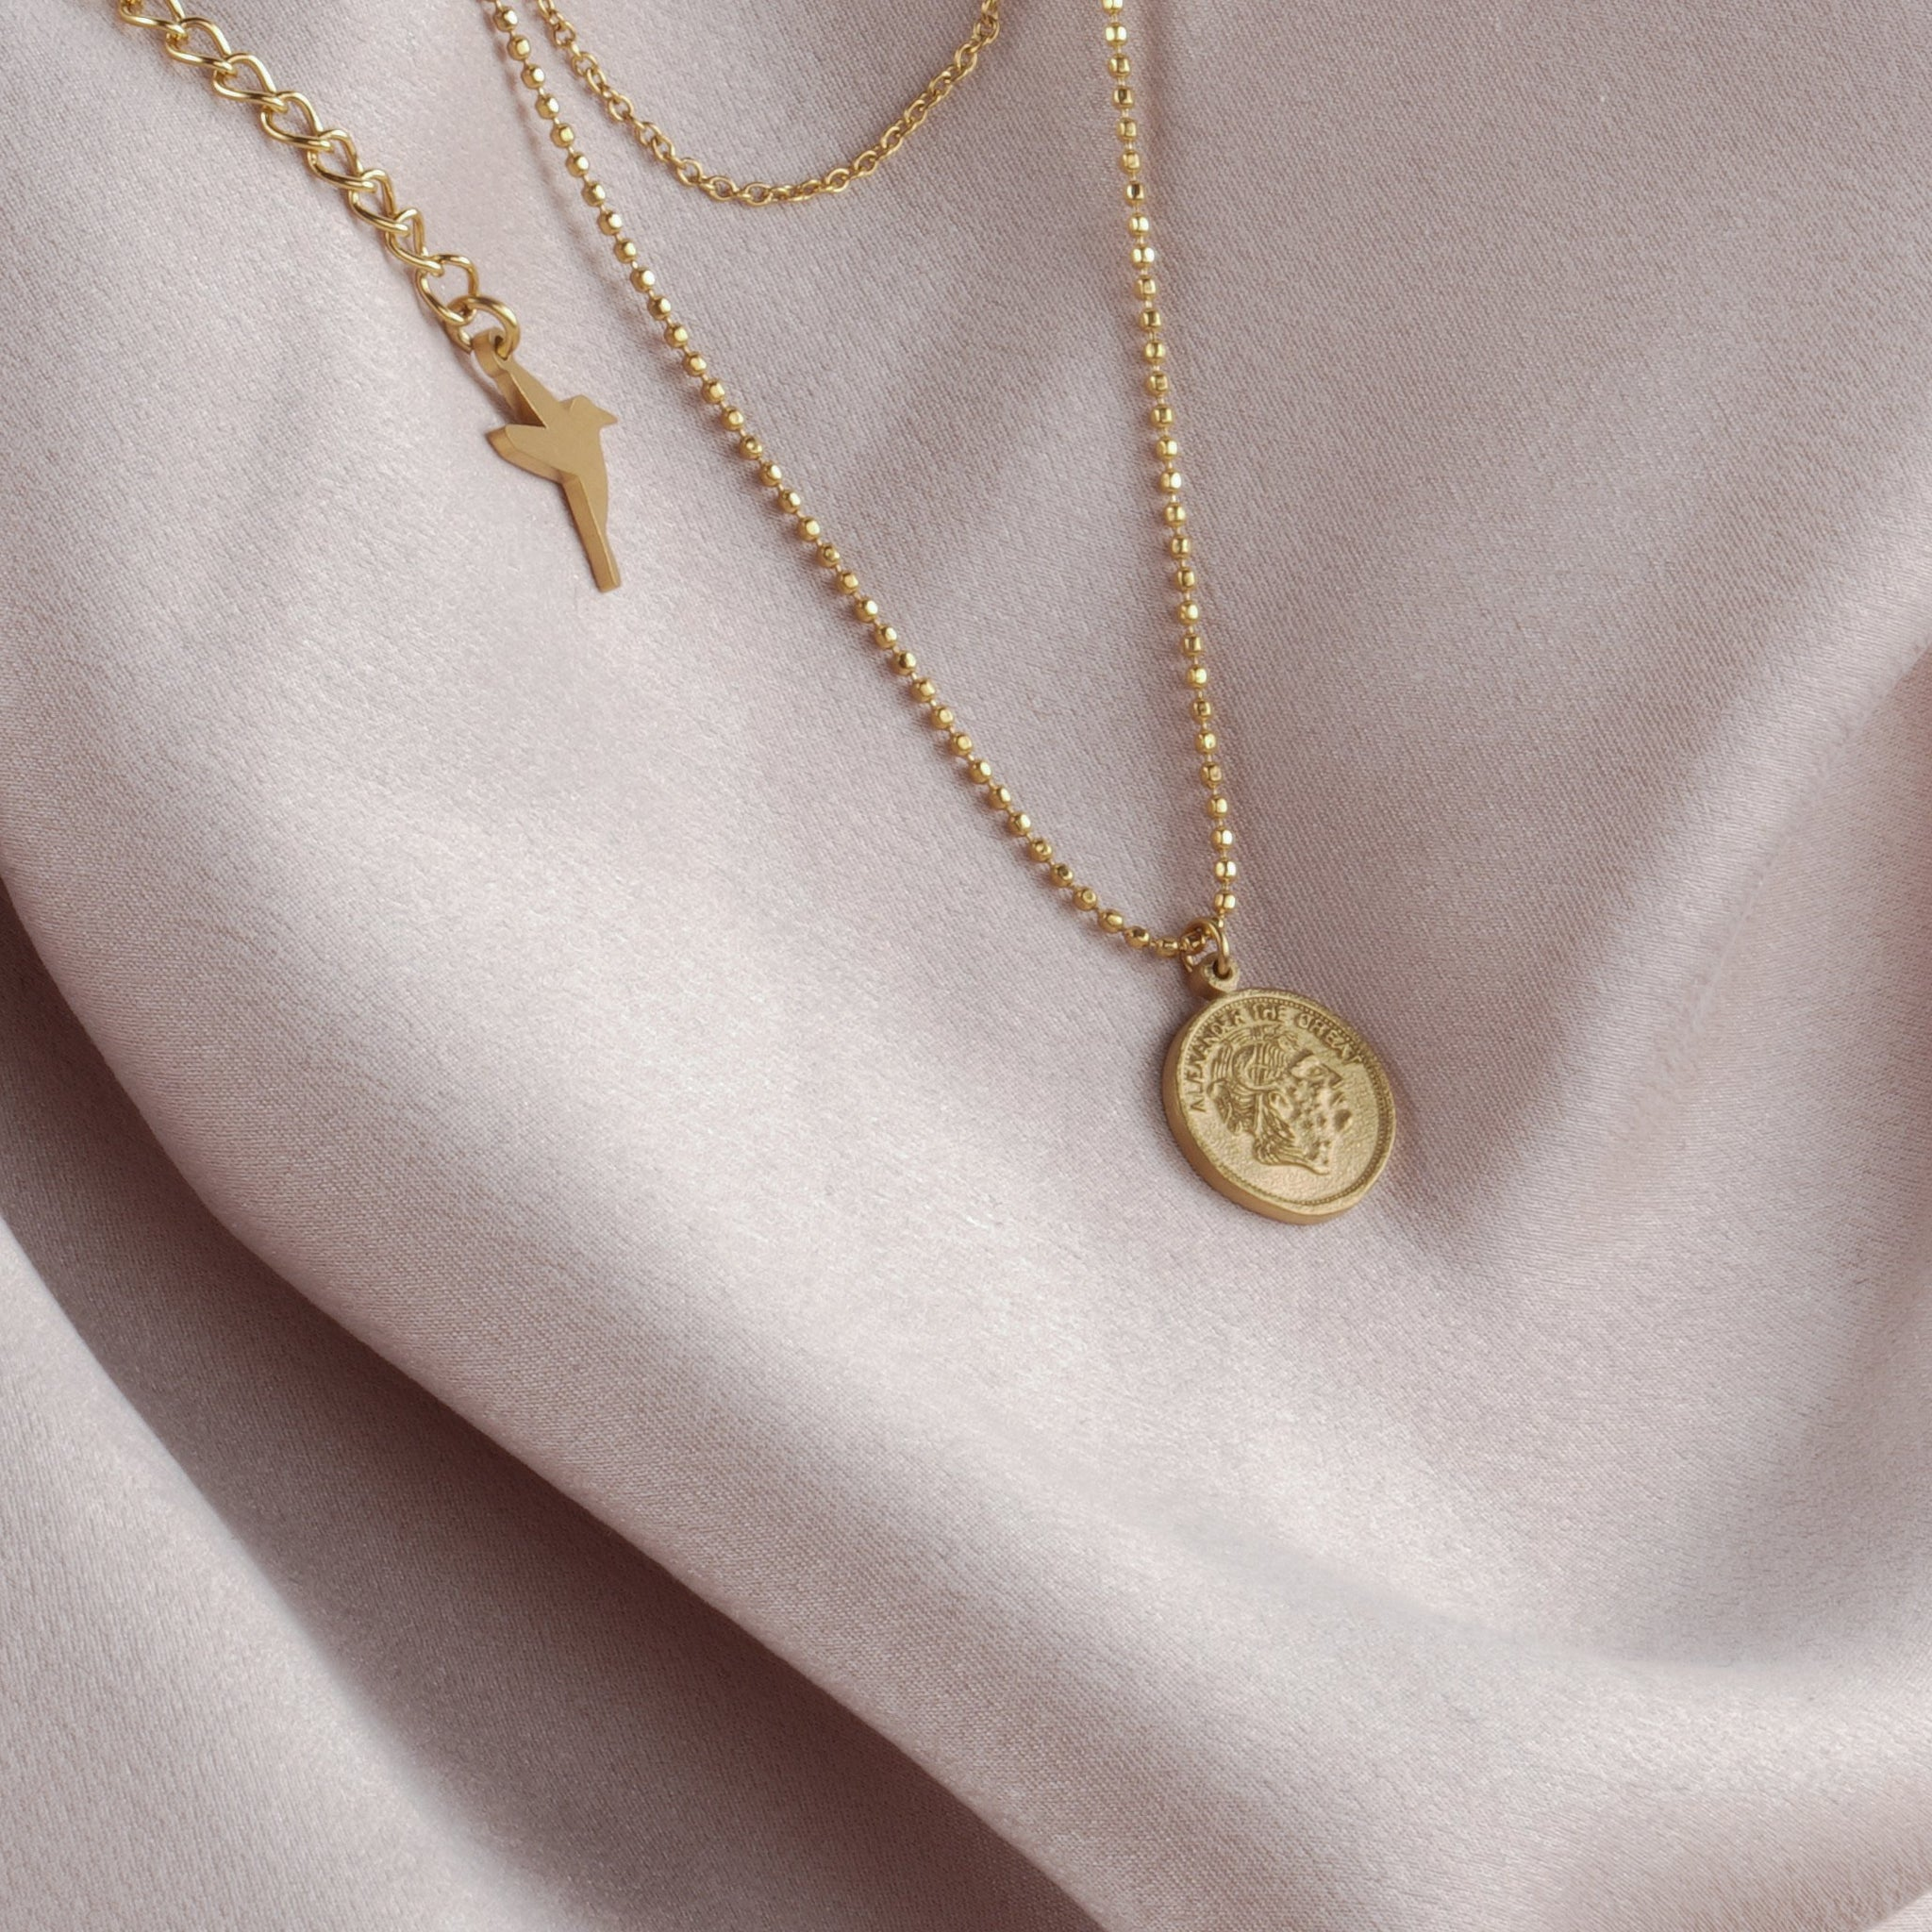 Alexander the great coin double chain necklace